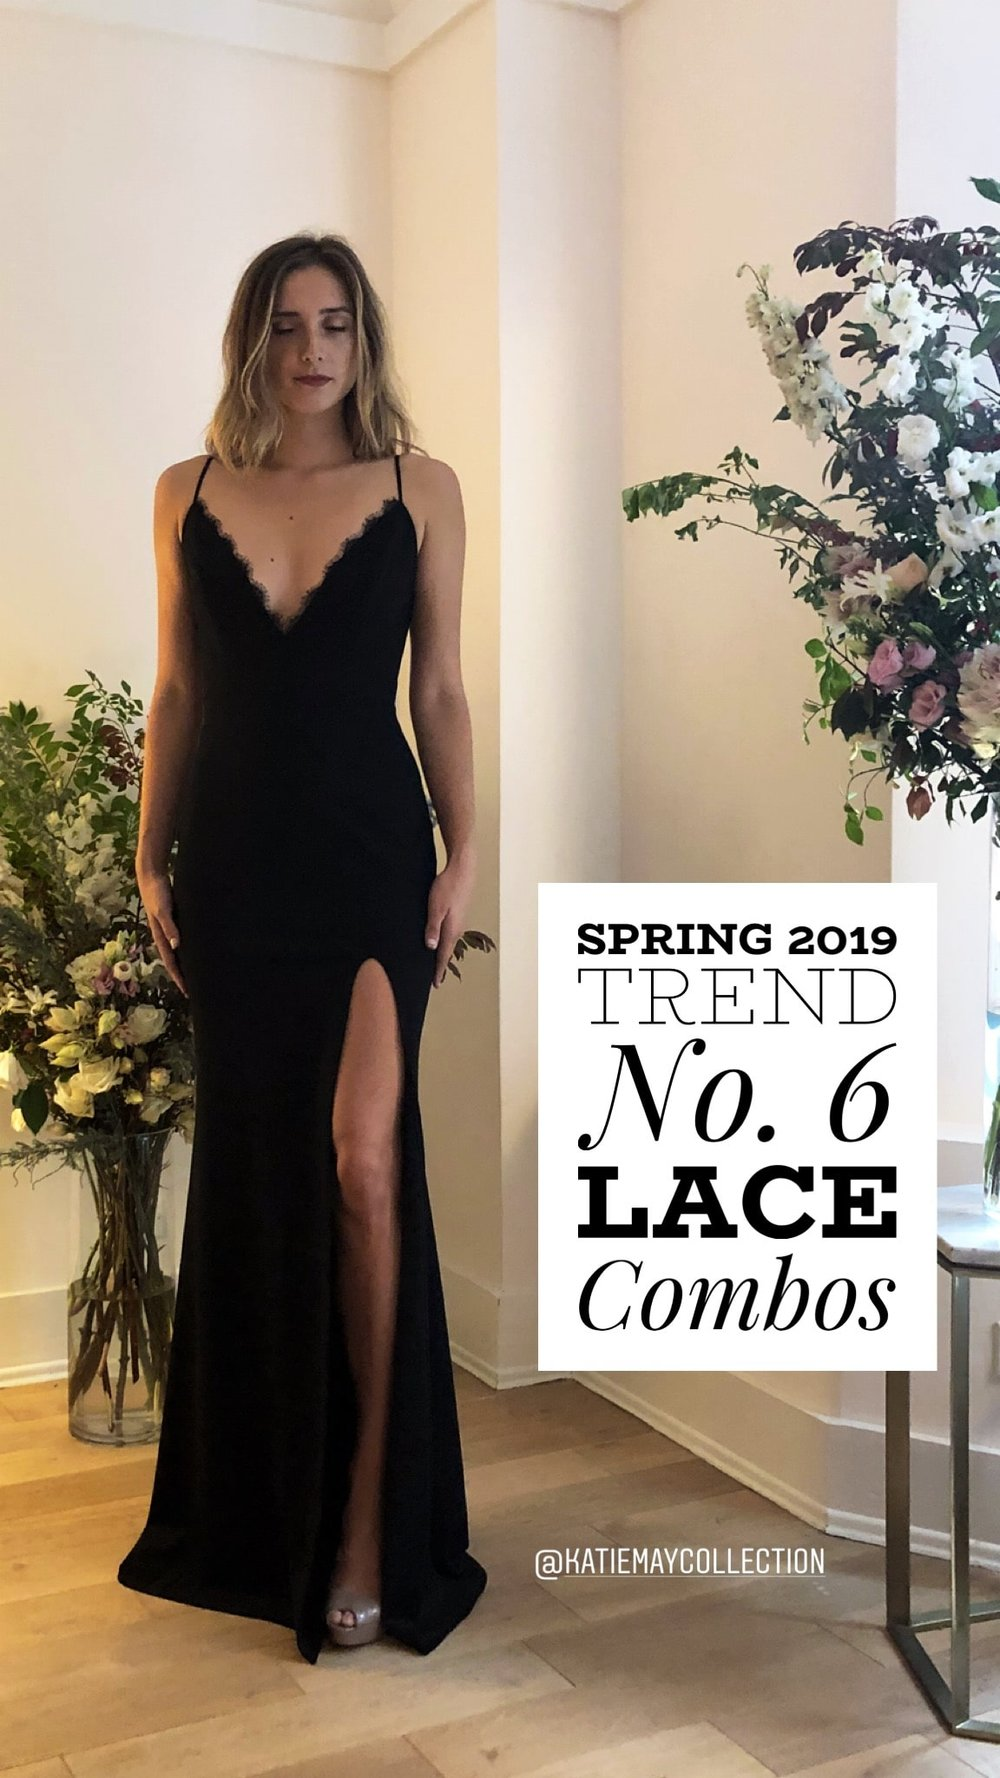 Lace Combo in black from Katie May